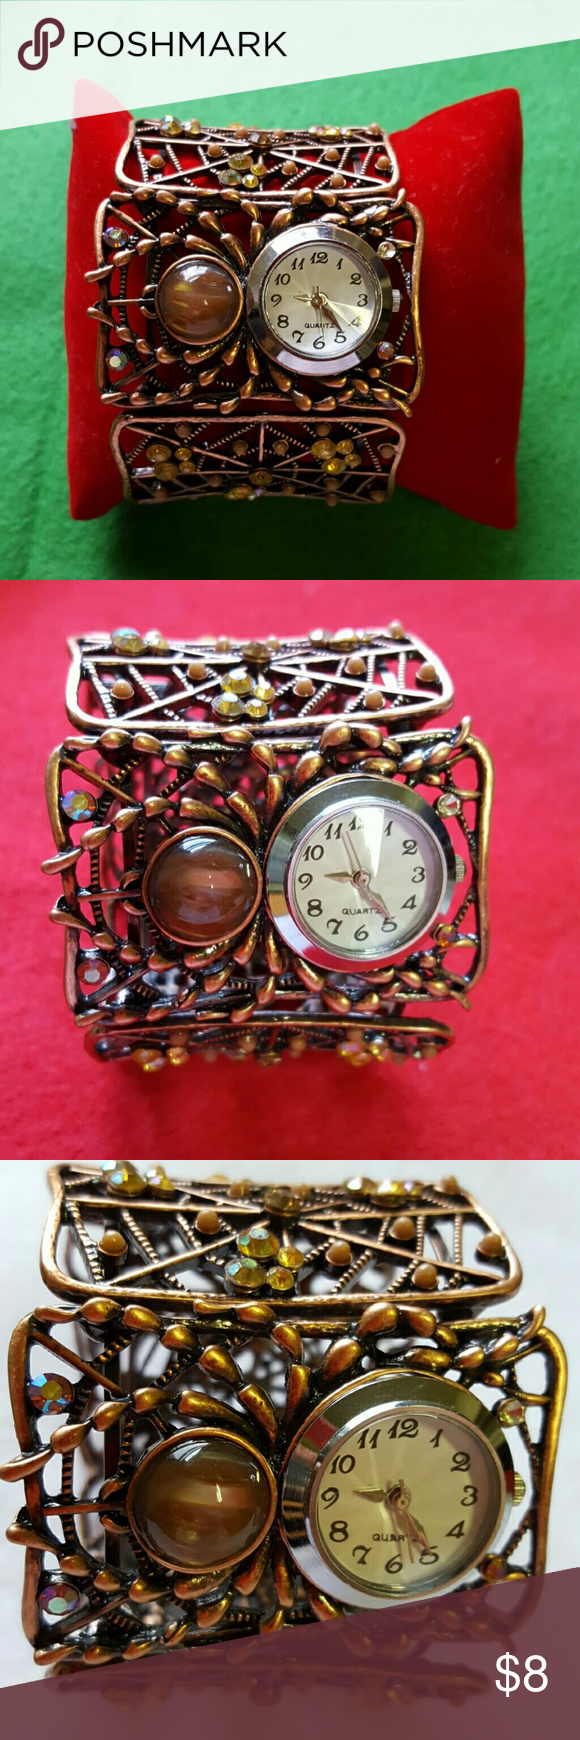 Bangle with Watch Bangle with watch in great condition ,watch is working in copper color, the bangle is adjustable,the width of the bangle is 2 inches. Quartz Accessories Watches